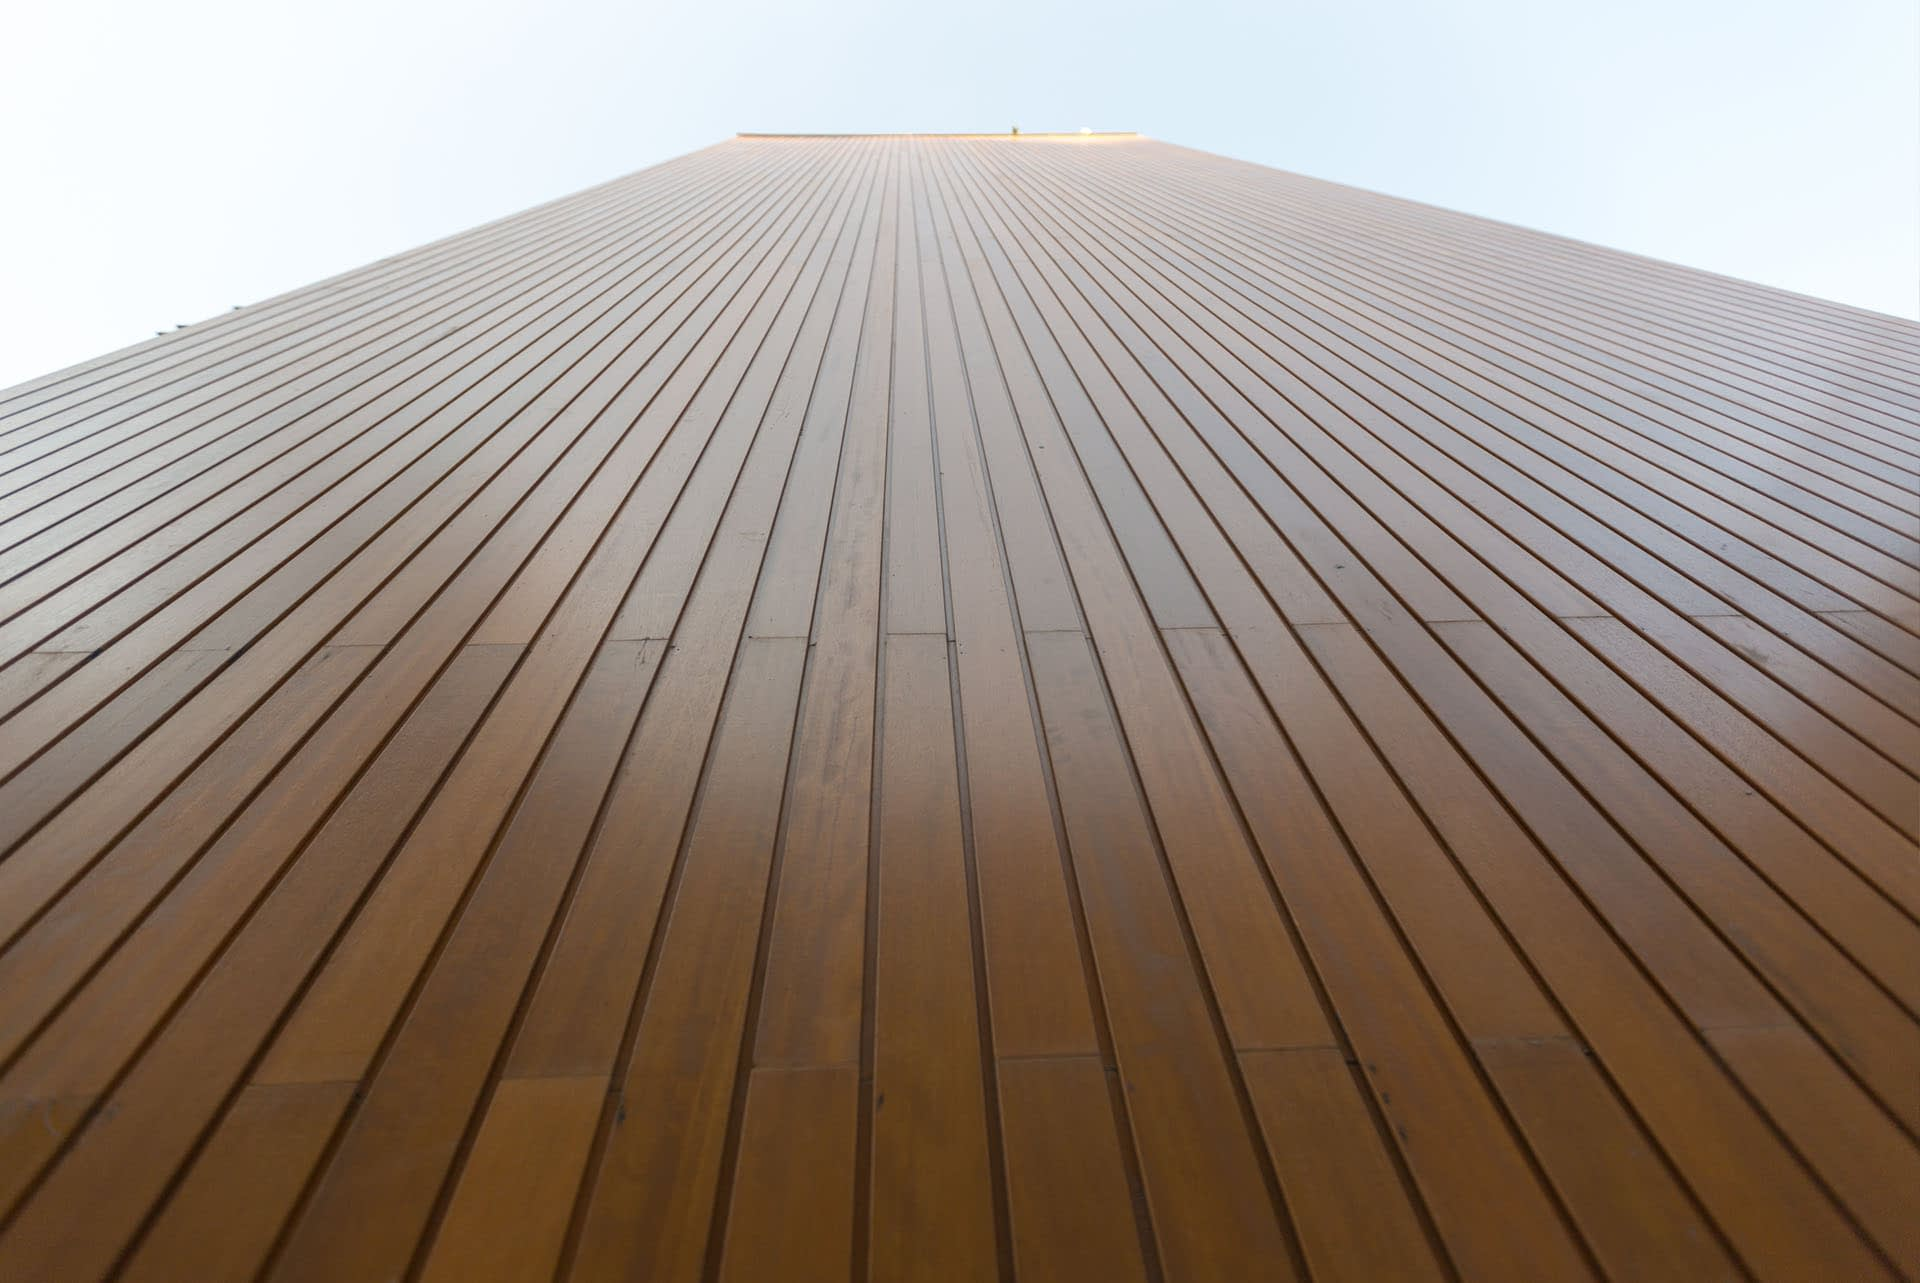 timber-cladding-weatherboards-external-sheet-material-outdoor-large-building-vertical